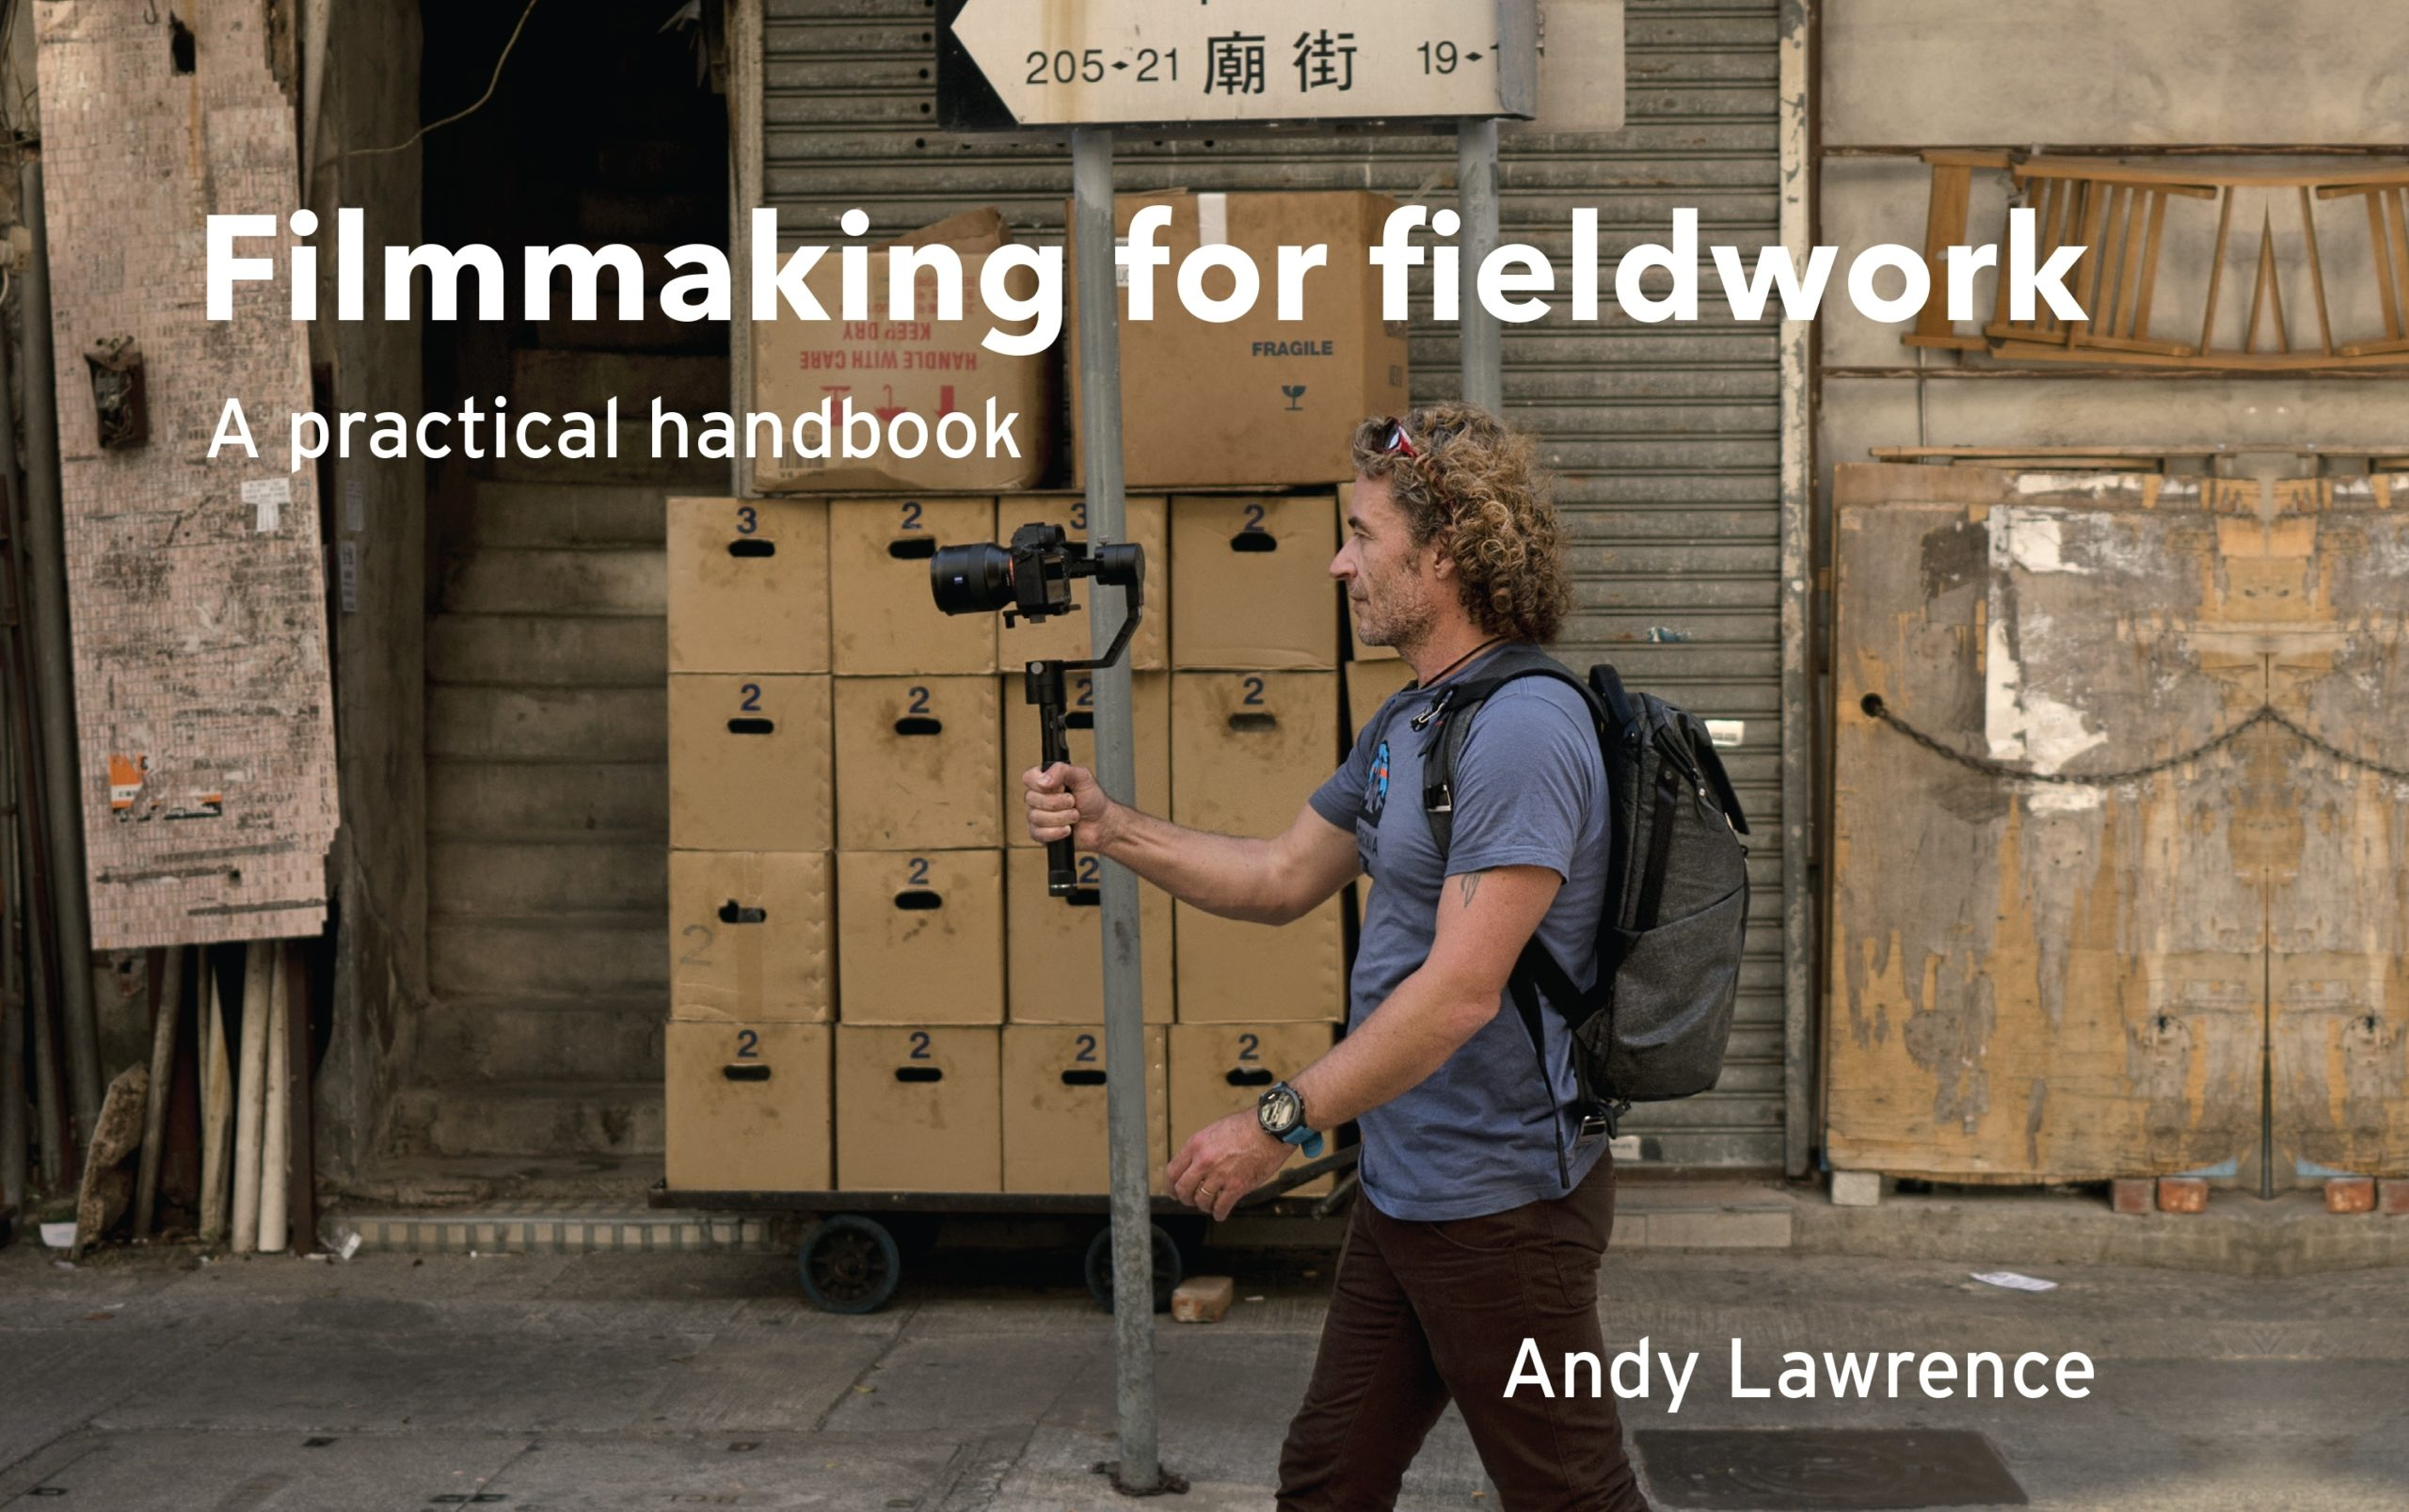 Filmmaking for fieldwork – Q&A with Andy Lawrence